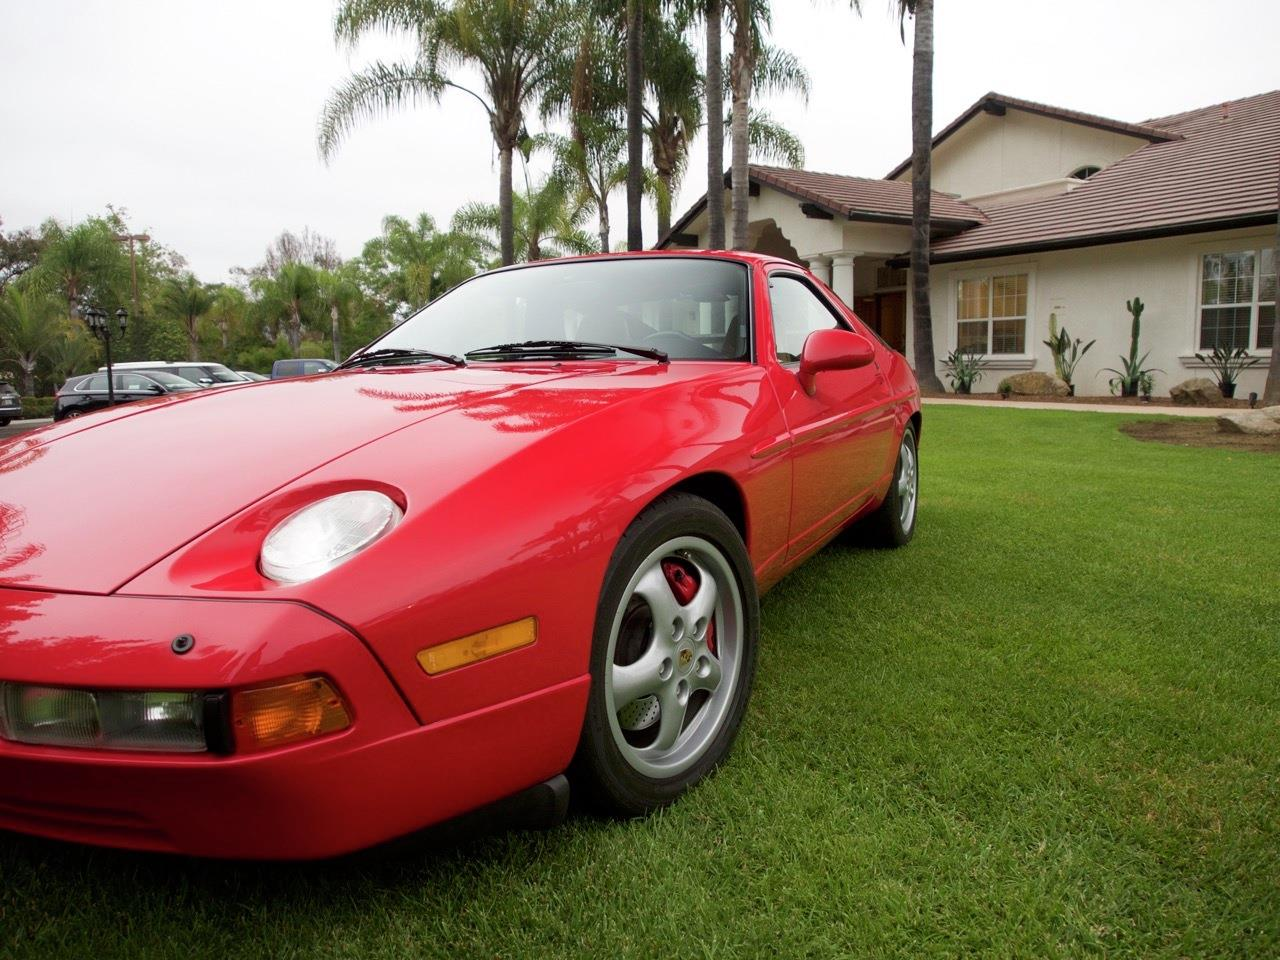 1988 Porsche 928 for sale in Carlsbad, CA – photo 6